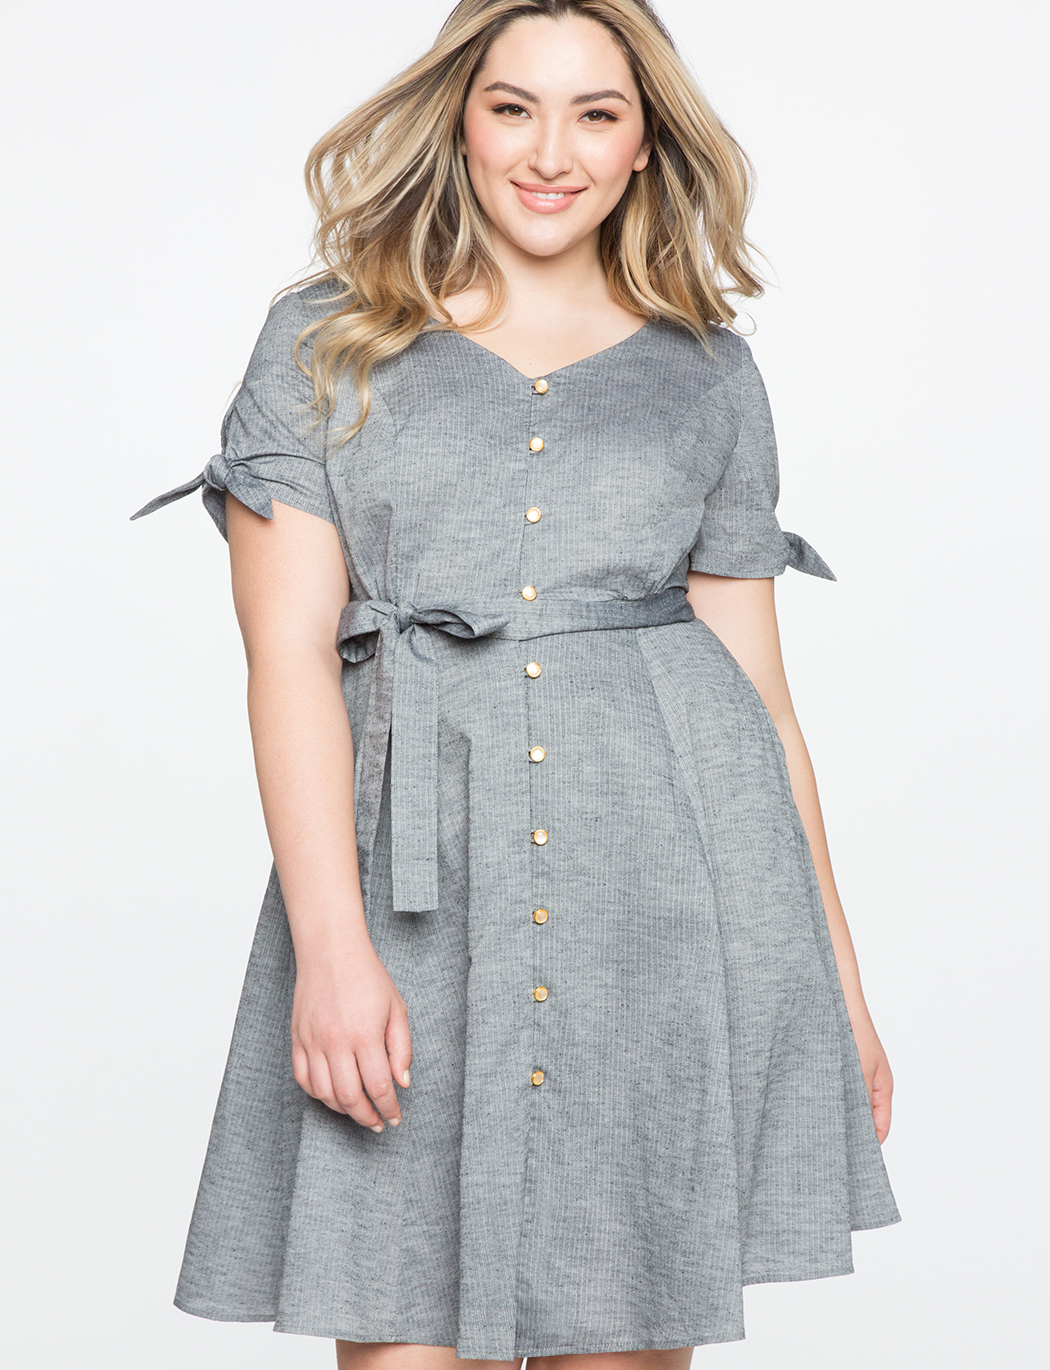 Button Down Fit and Flare Dress | Women\'s Plus Size Dresses | ELOQUII